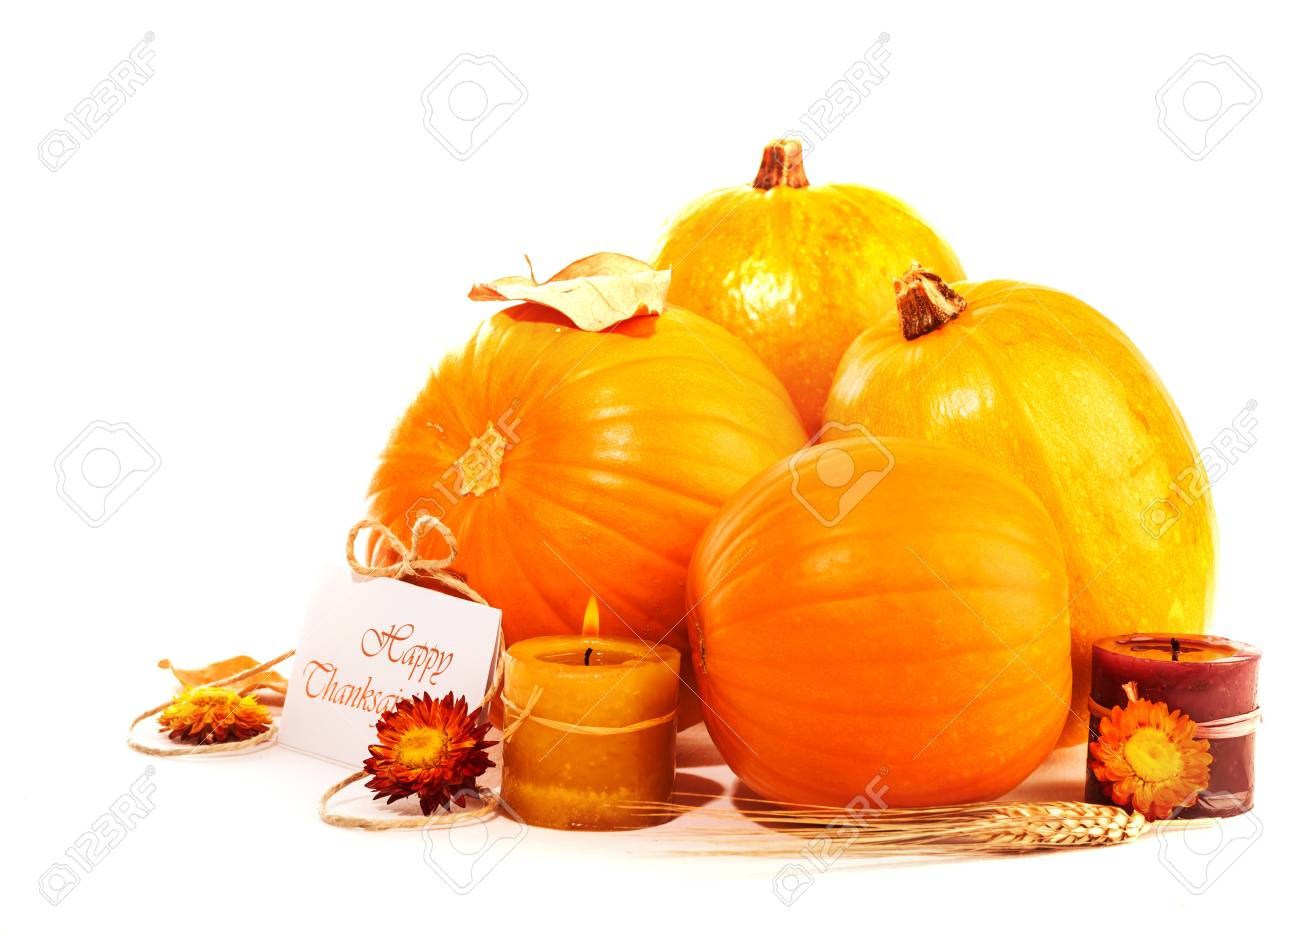 Happy Thanksgiving holiday, traditional gourd decoration isolated on white background, festive postcard, autumnal harvest season Stock Photo - 23015086